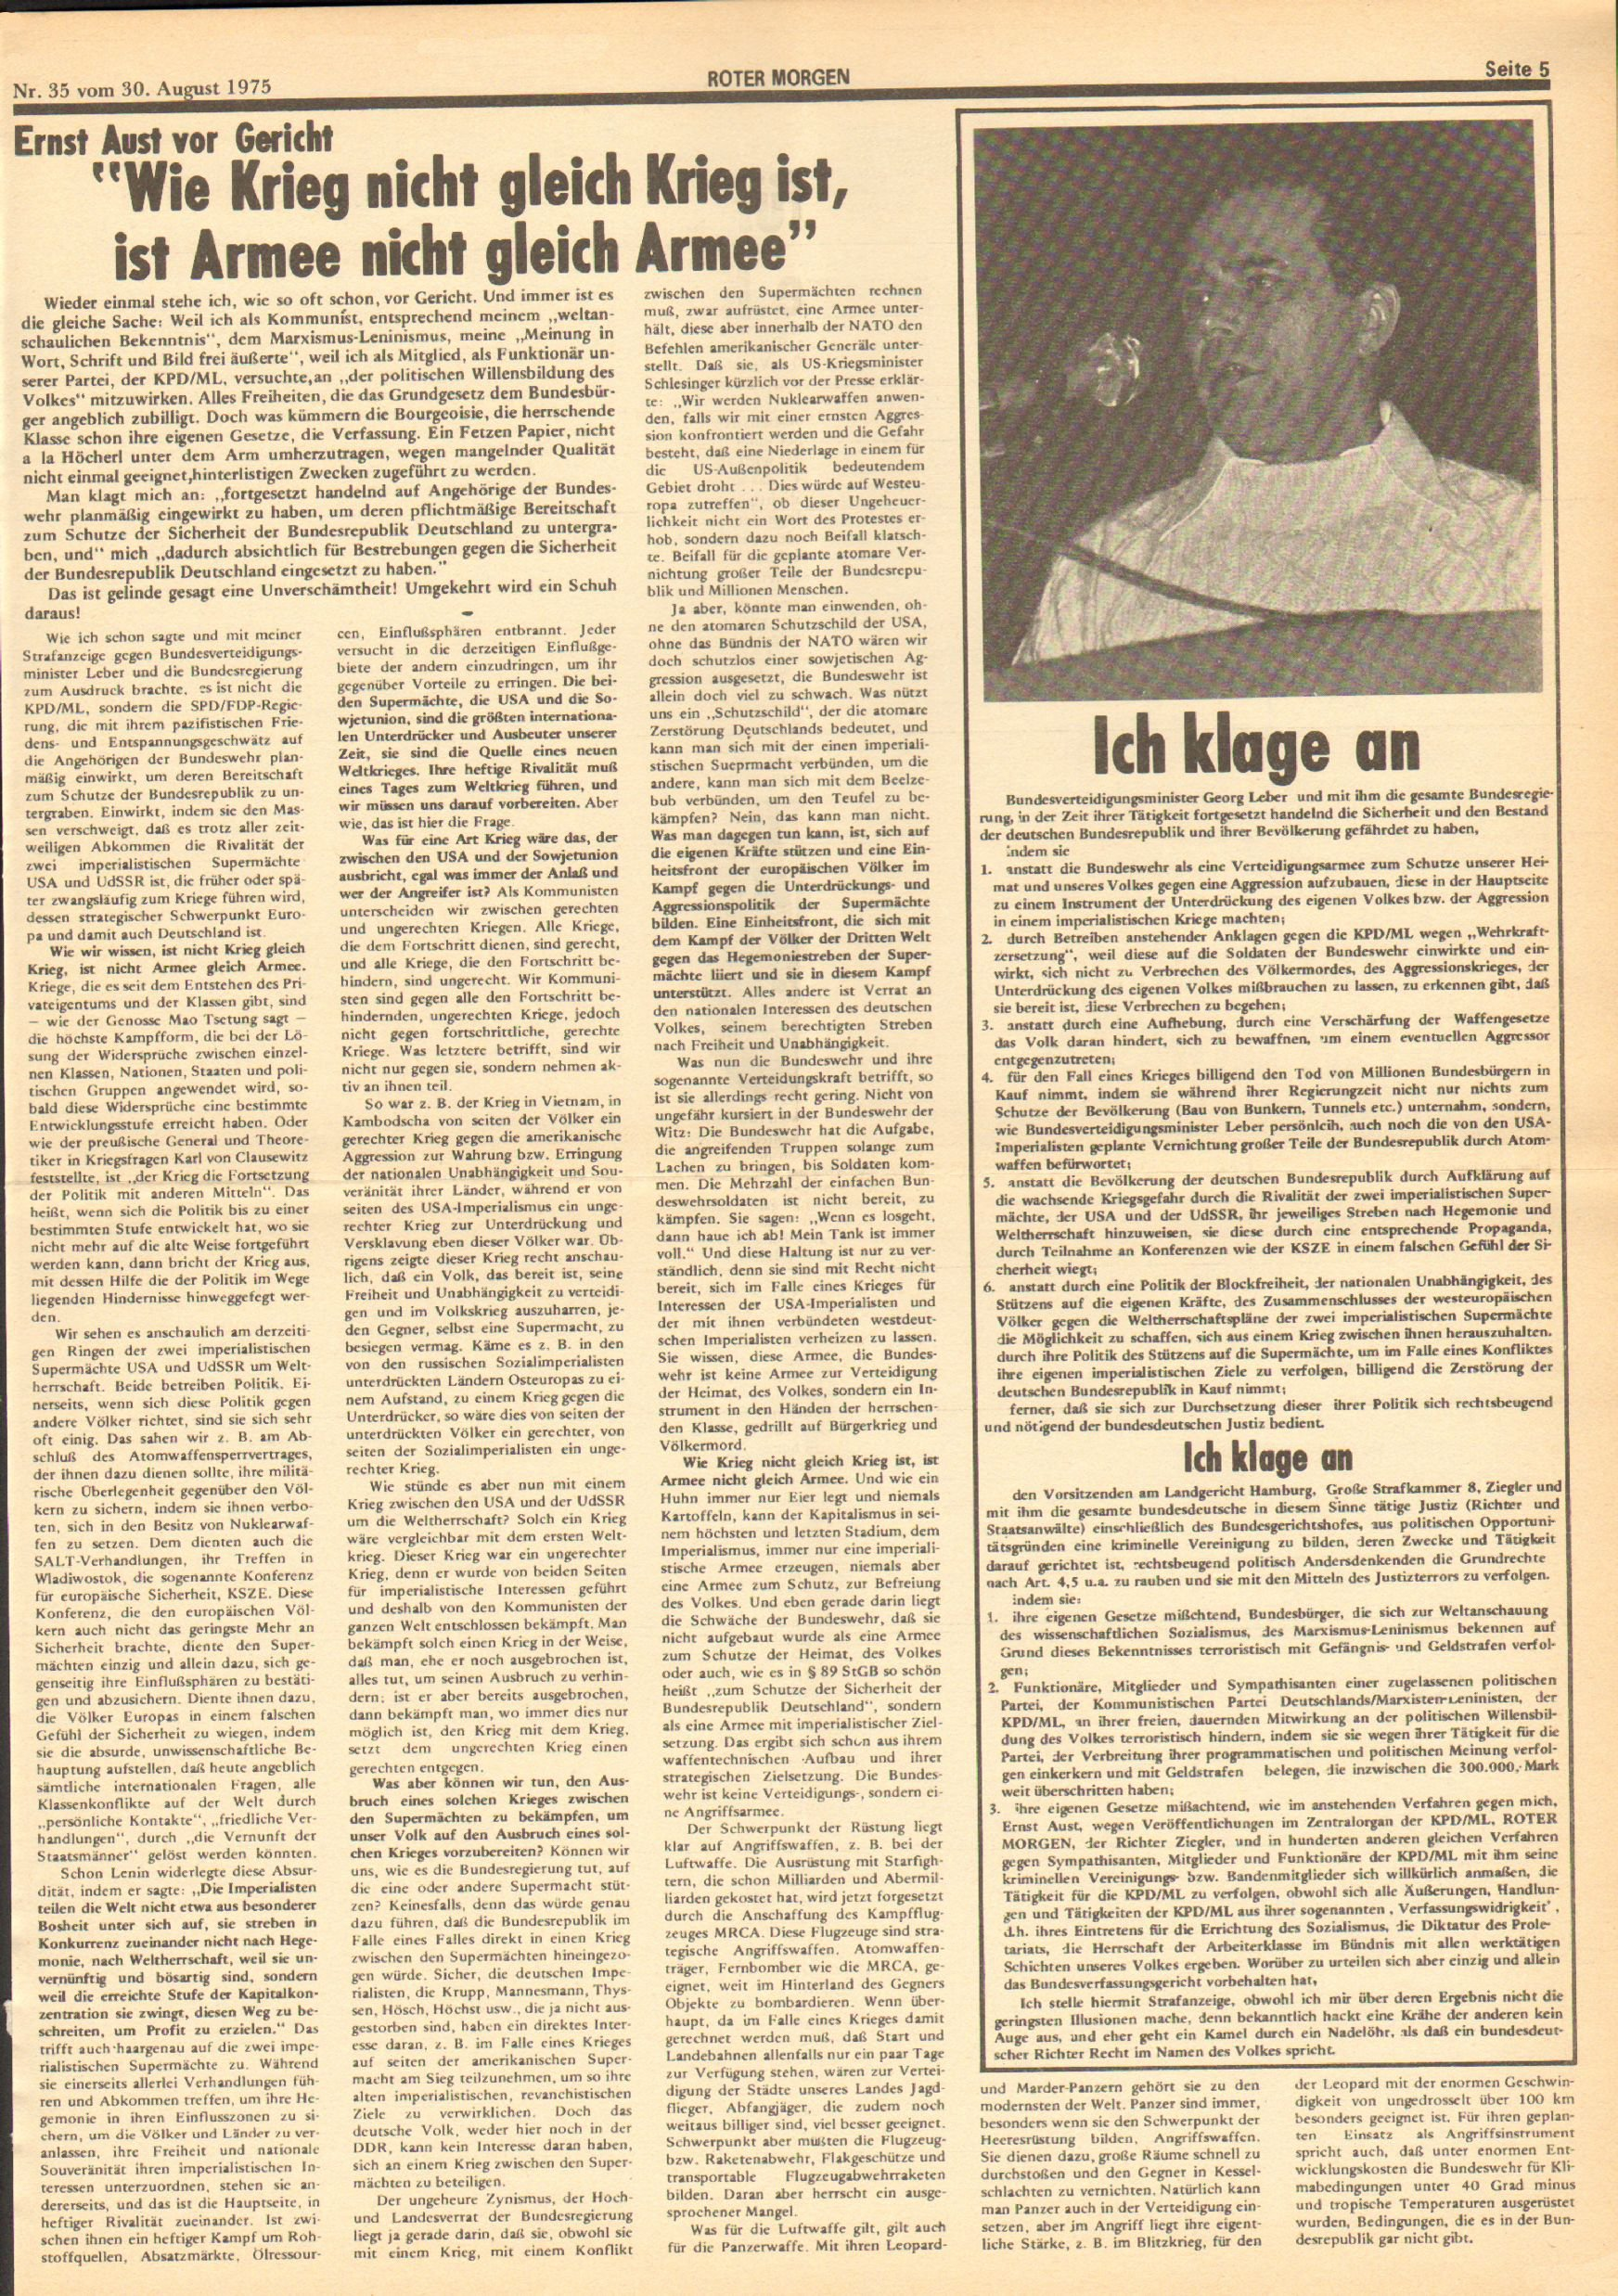 Roter Morgen, 9. Jg., 30. August 1975, Nr. 35, Seite 5